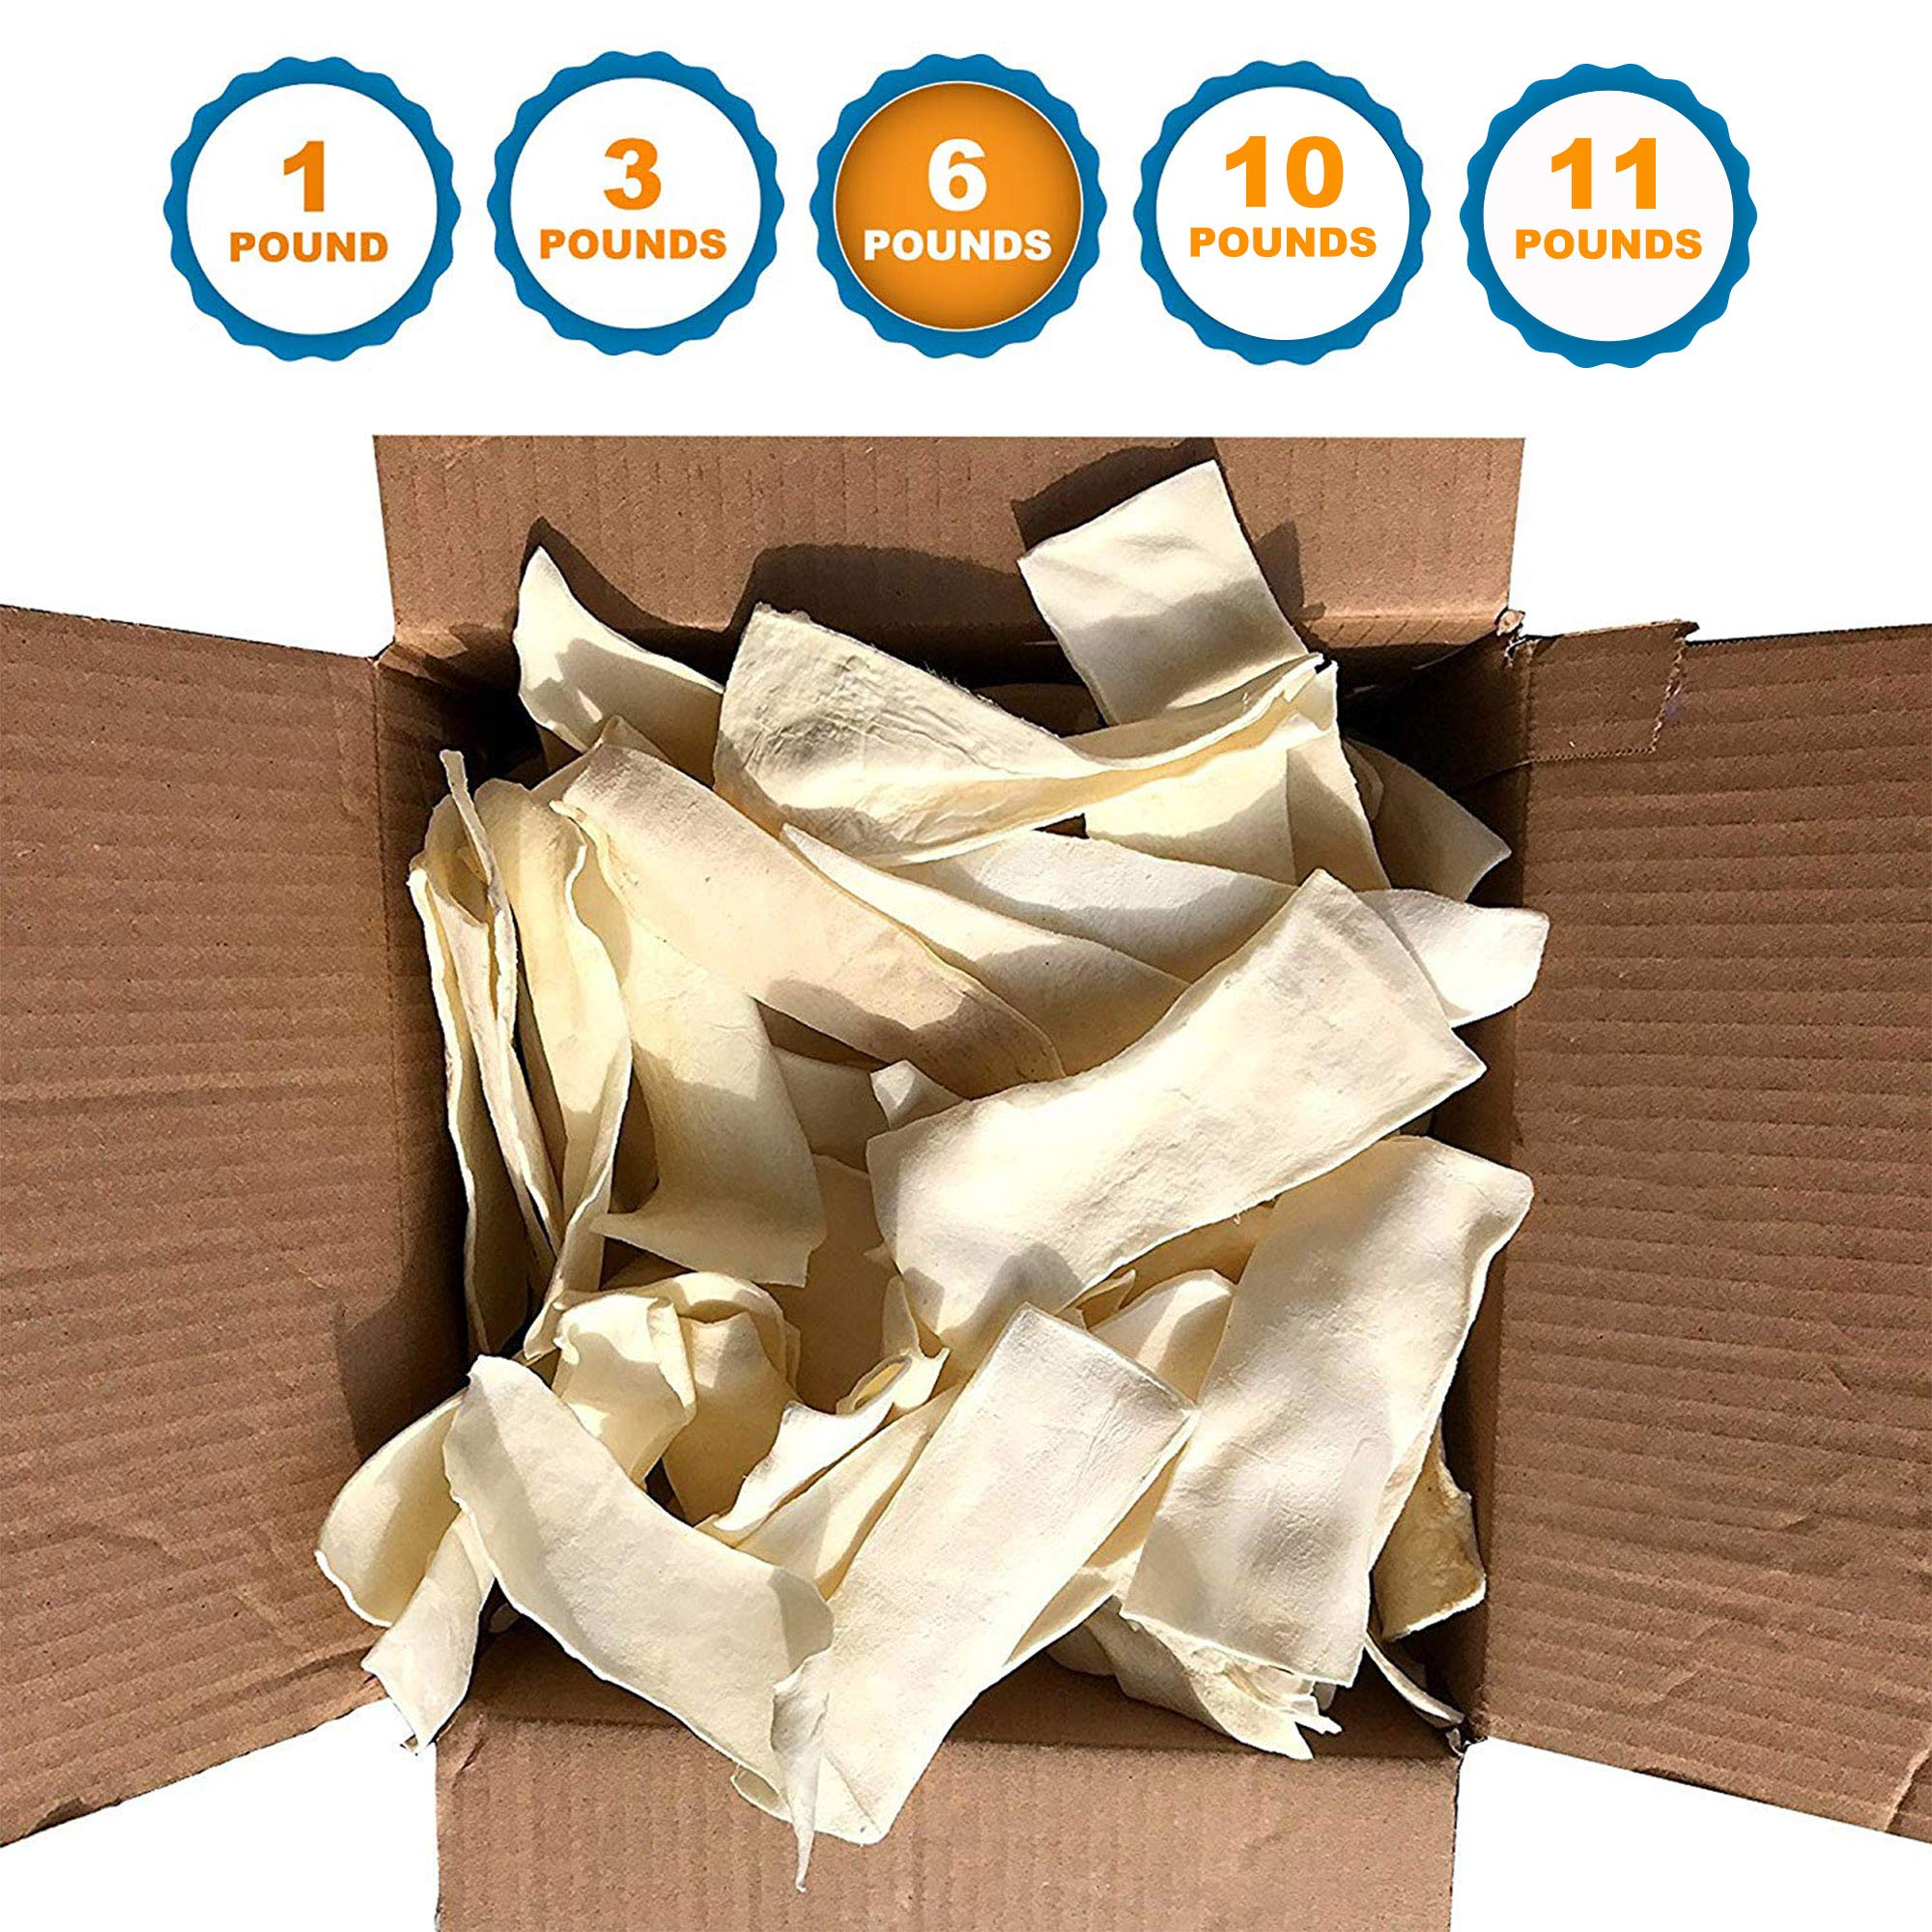 123 Treats - Rawhide Chips for Dogs (6 Pounds) Quality Bulk Dog Chews - No Additives, Chemicals or Hormones from Natural Grass Fed Livestock by 123 Treats